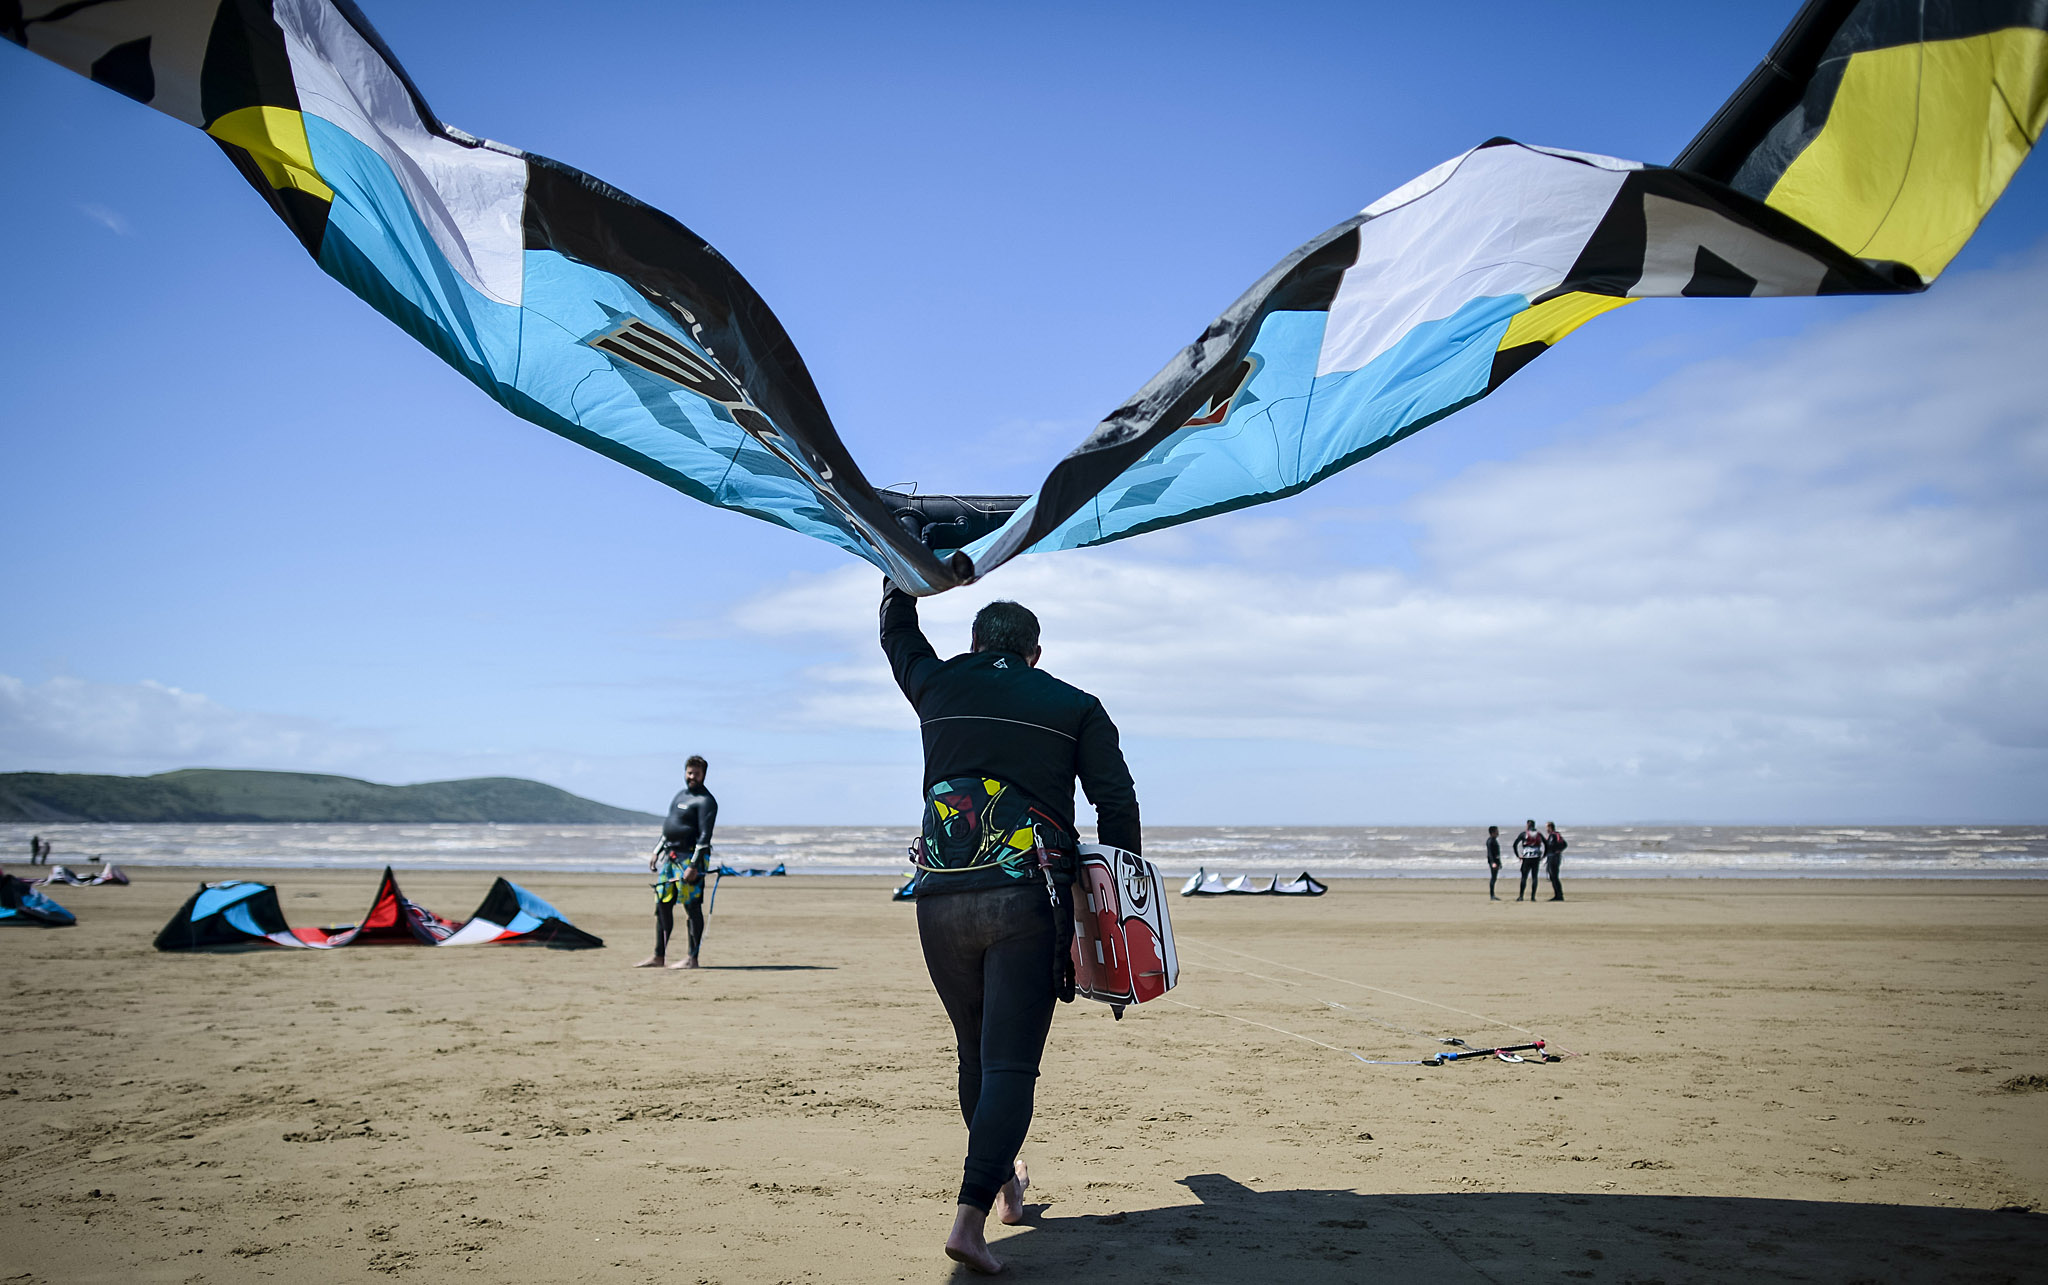 Spring weather May 12th 2015...Windsurfers and kitesurfers prepare their kites and boards as near perfect conditions are present at Weston-super-Mare beach on a warm and windy day in the Bristol Channel, Somerset. PRESS ASSOCIATION Photo. Picture date: Tuesday May 12, 2015. Photo credit should read: Ben Birchall/PA Wire